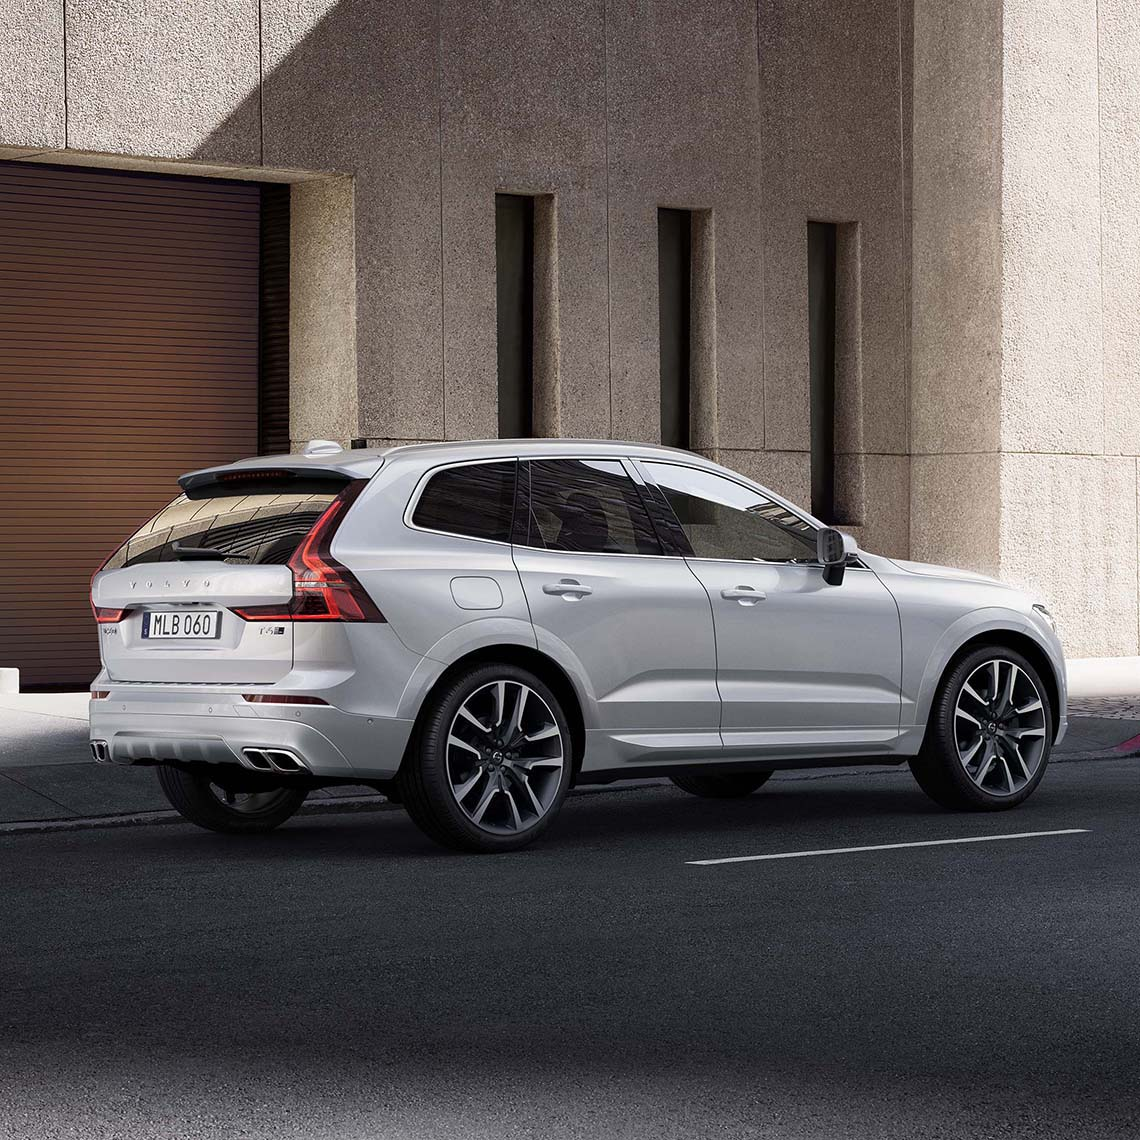 Download A Brochure For Volvo Models: 2018 XC60 Luxury SUV